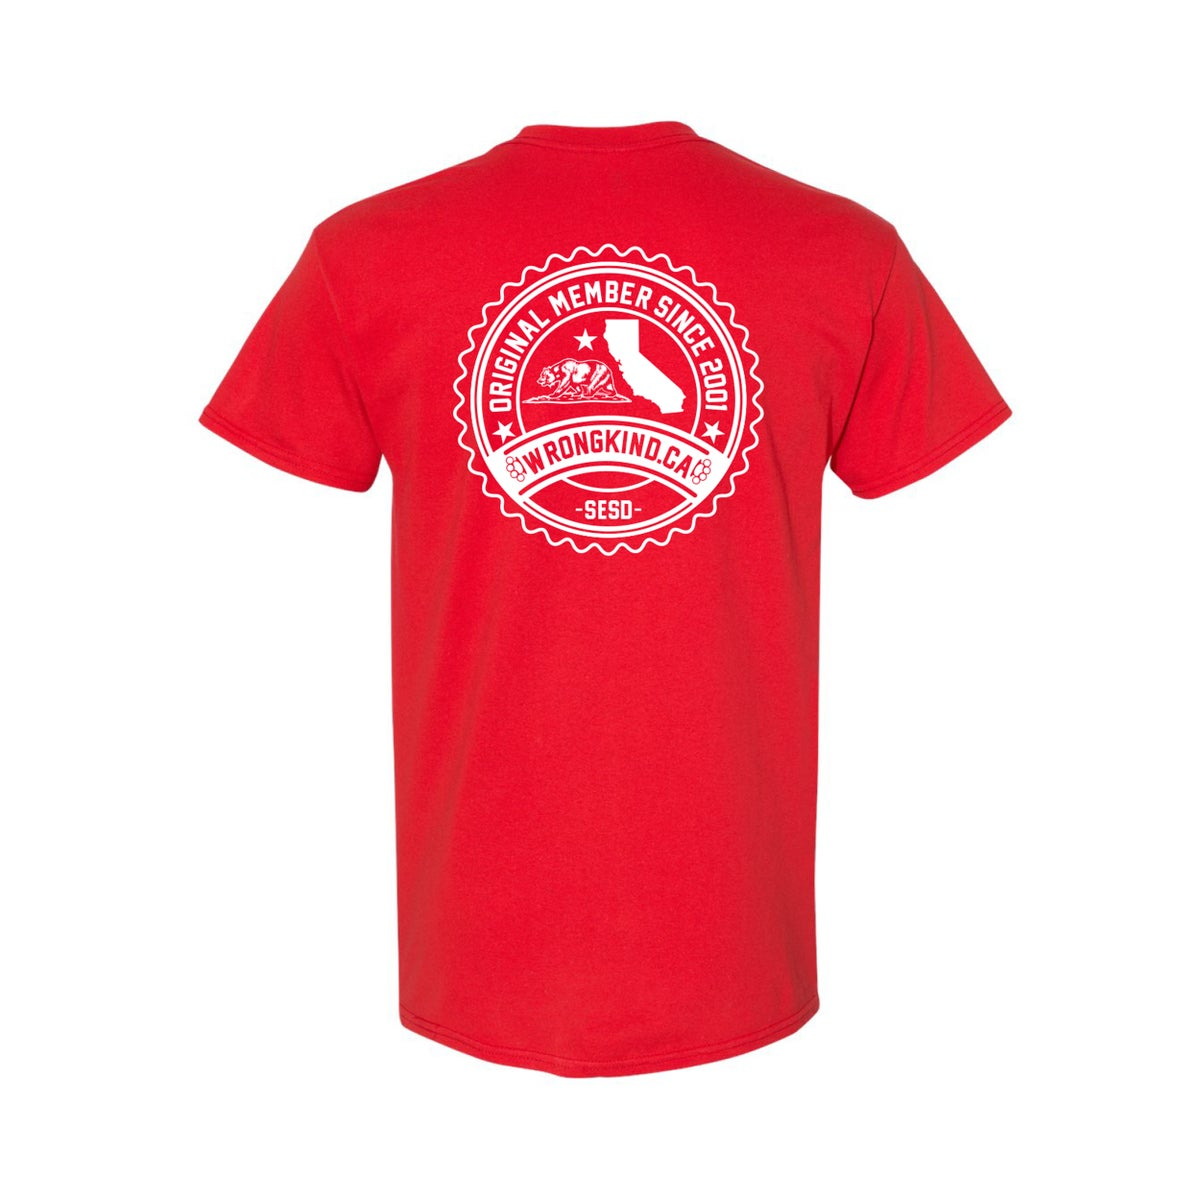 Image of Wrongkind Stamp T-Shirt (Red w/ White)